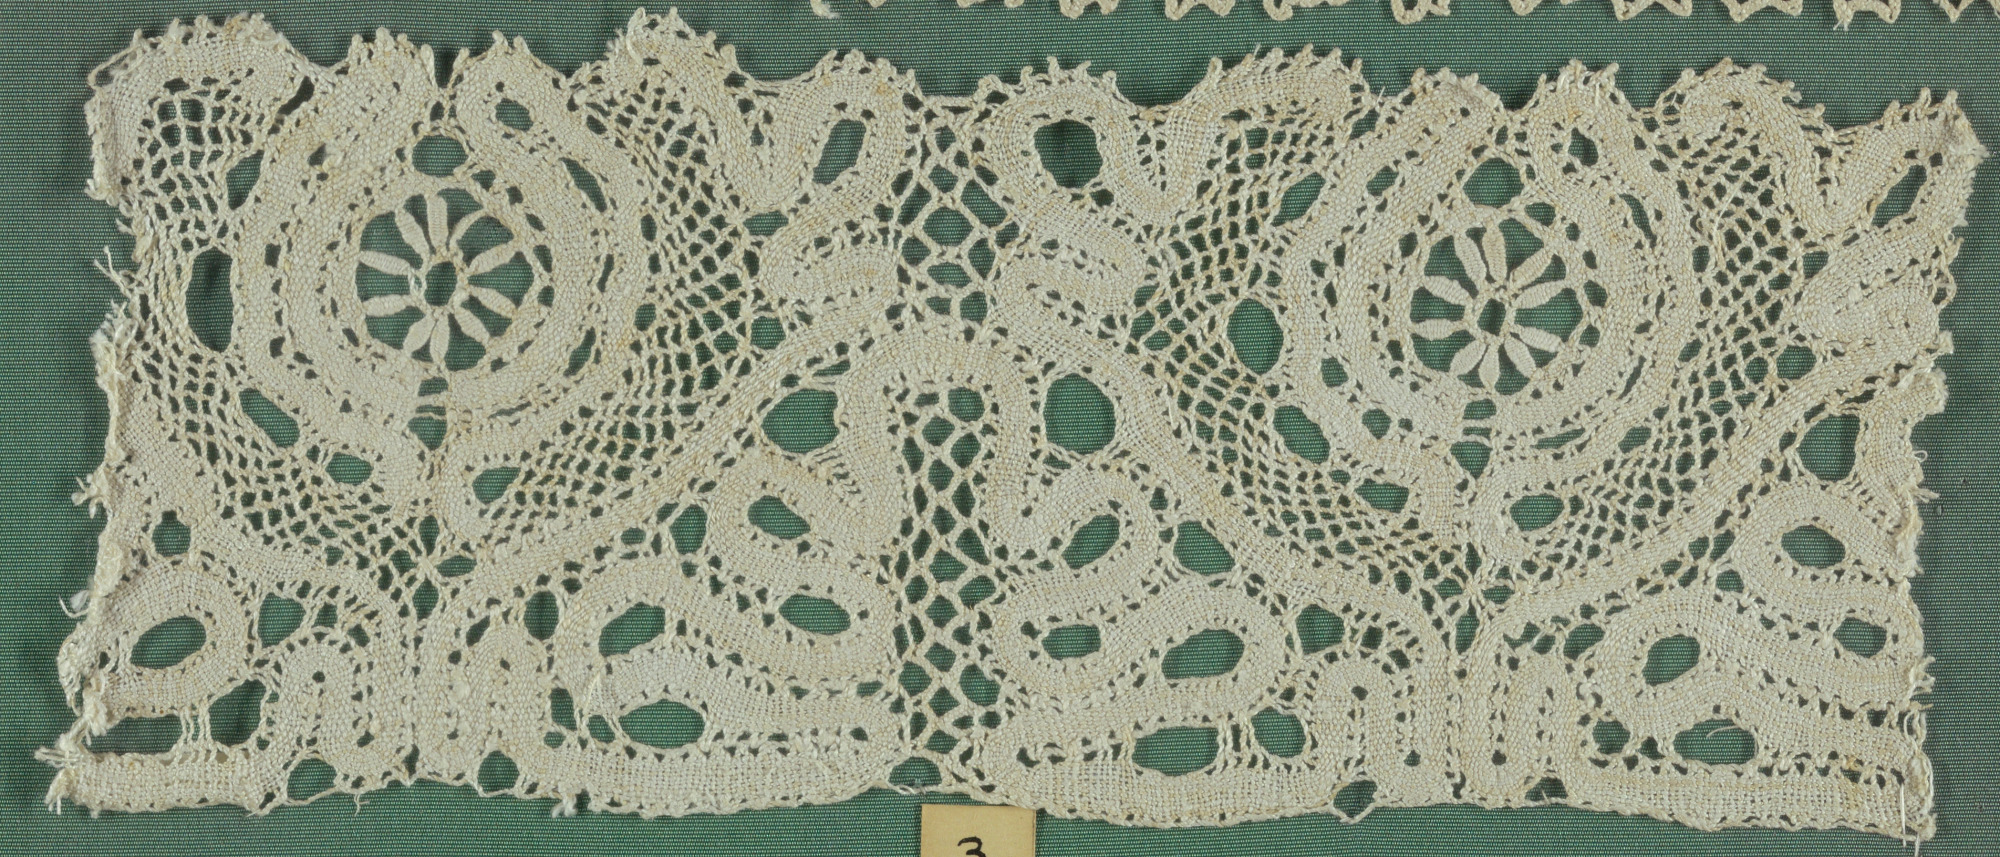 Cooper Union Museum Lace Study Card